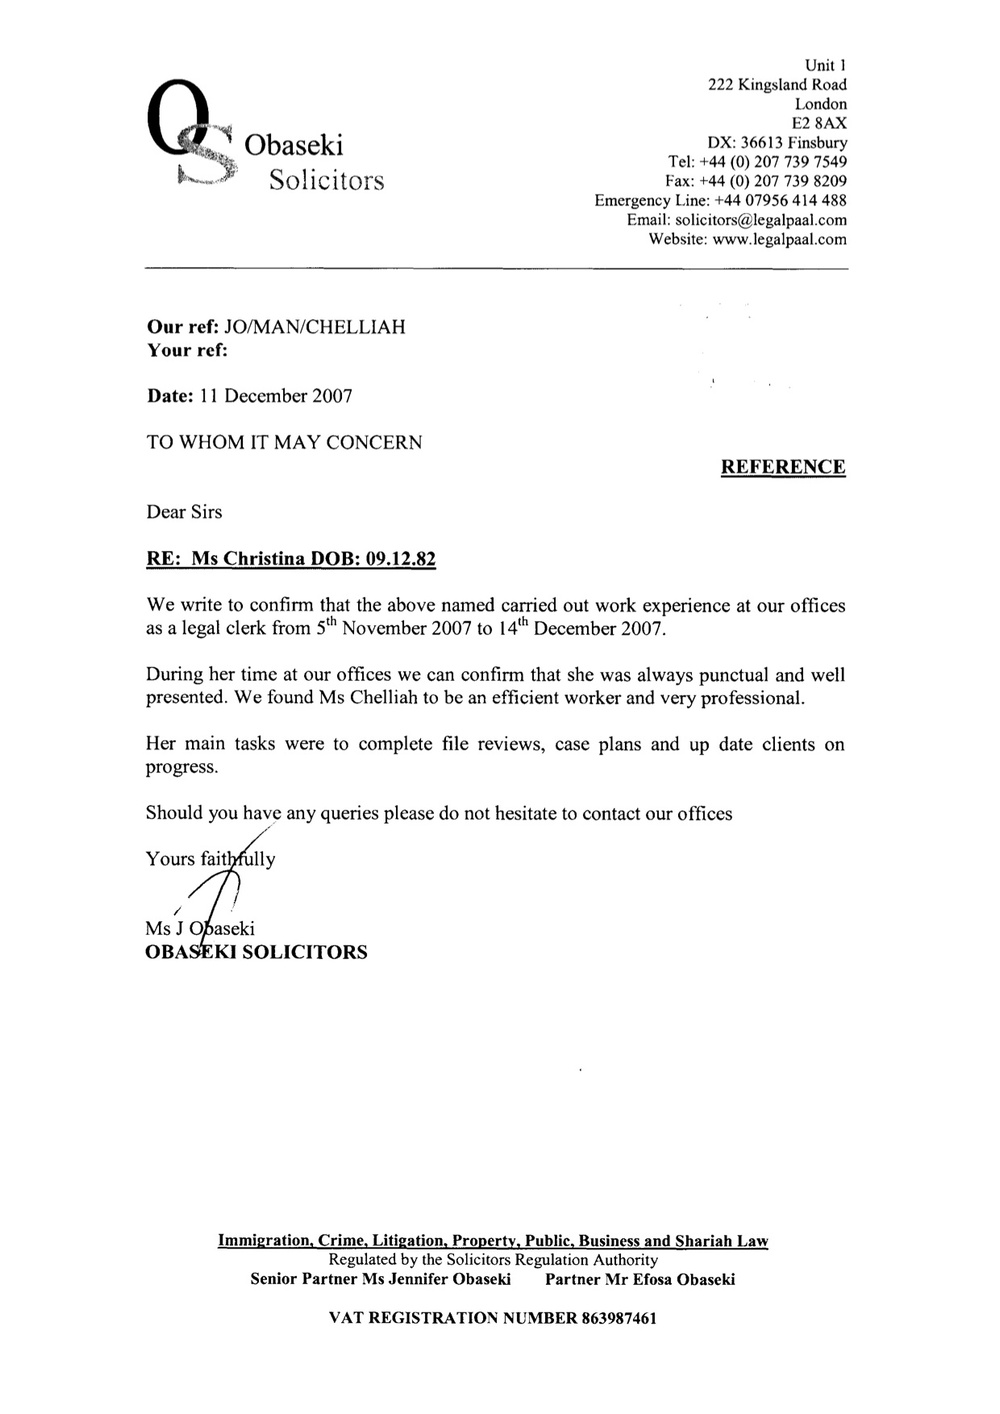 Letter Requesting Legal Information